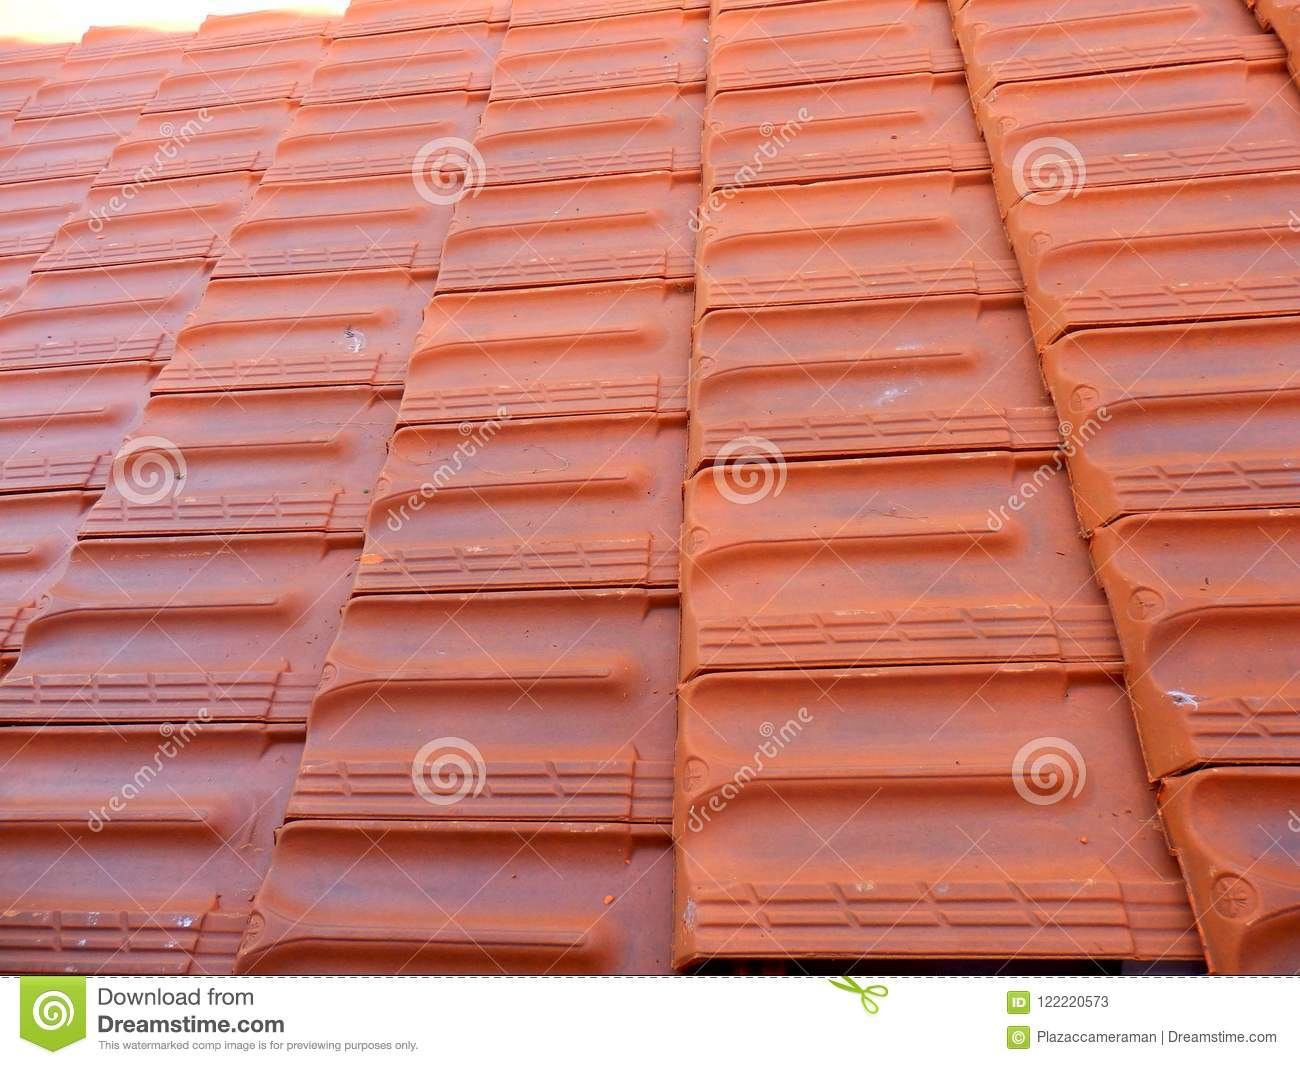 New Roof Tiles stock image. Image of architecture, rooftop - 122220573